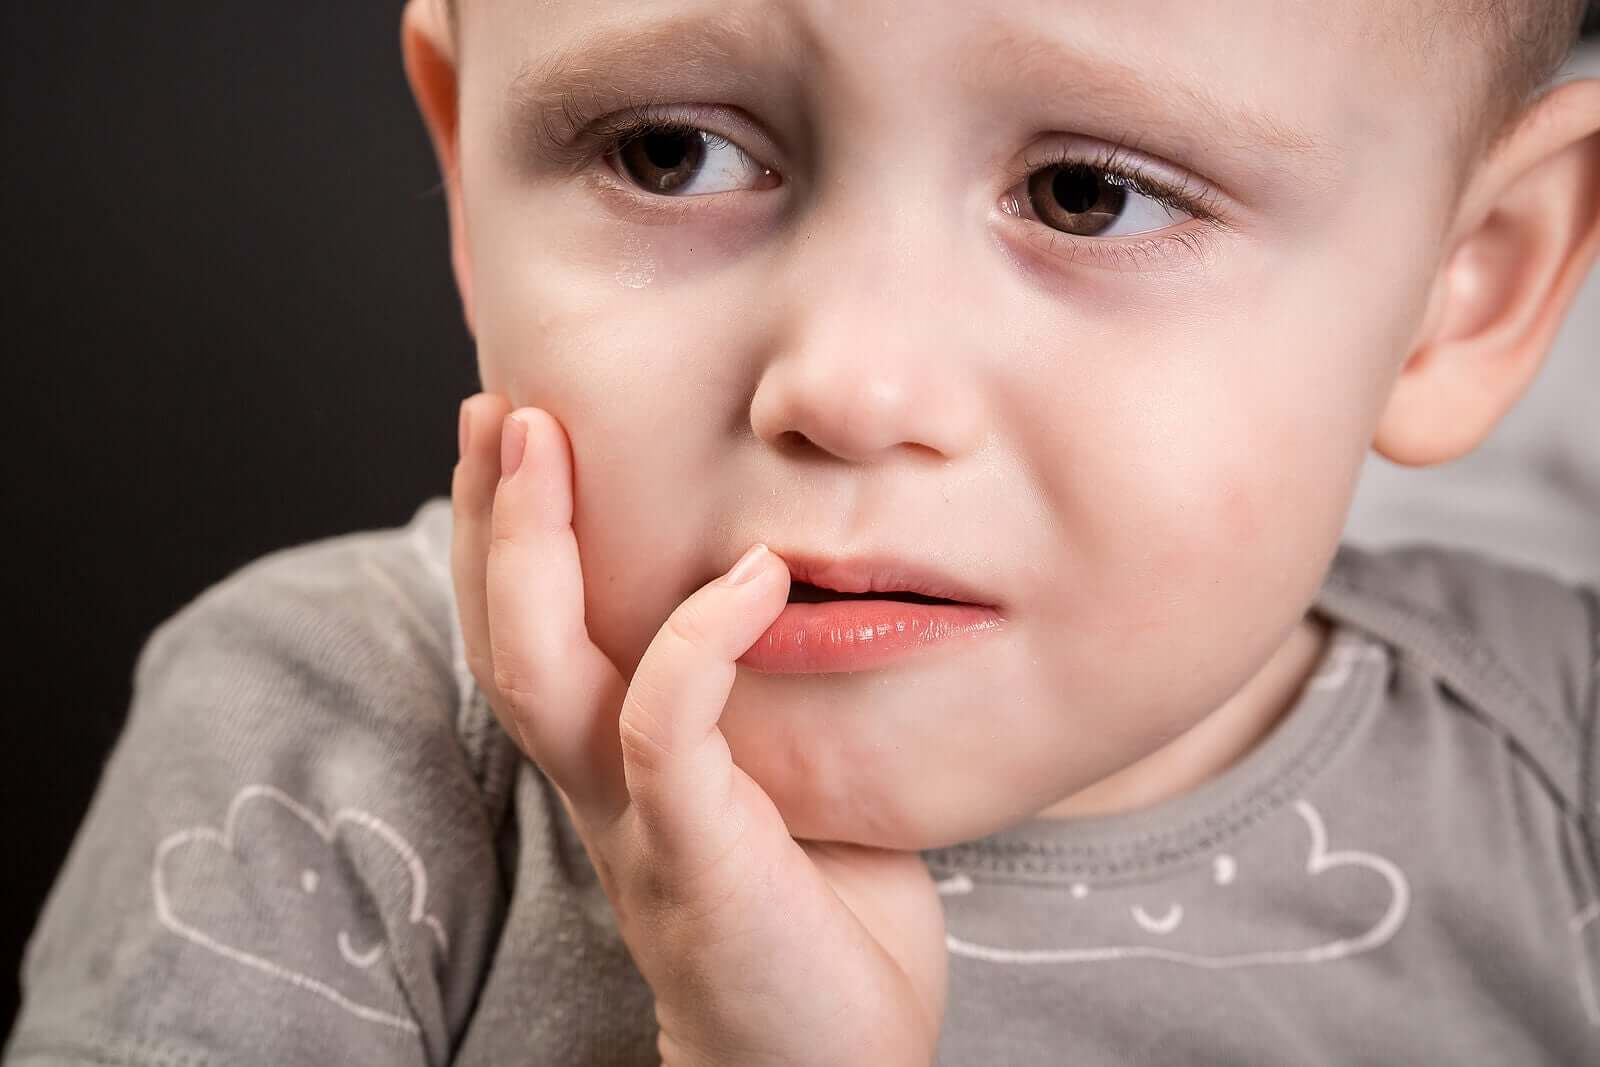 Dental Avulsion in Children: What It Is and How to Act